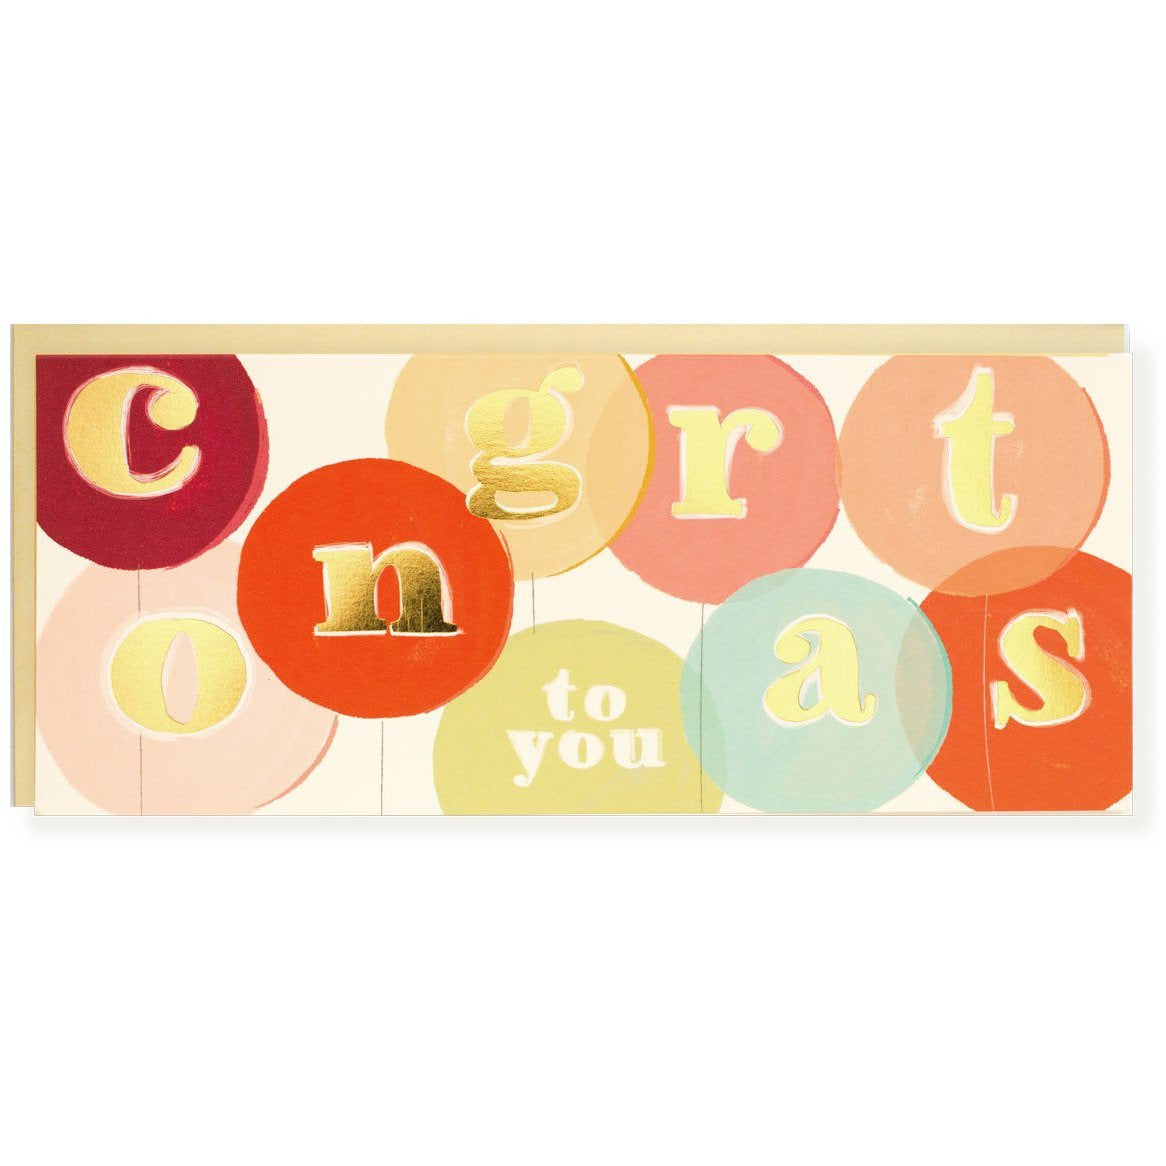 Congrats To You Card - The First Snow